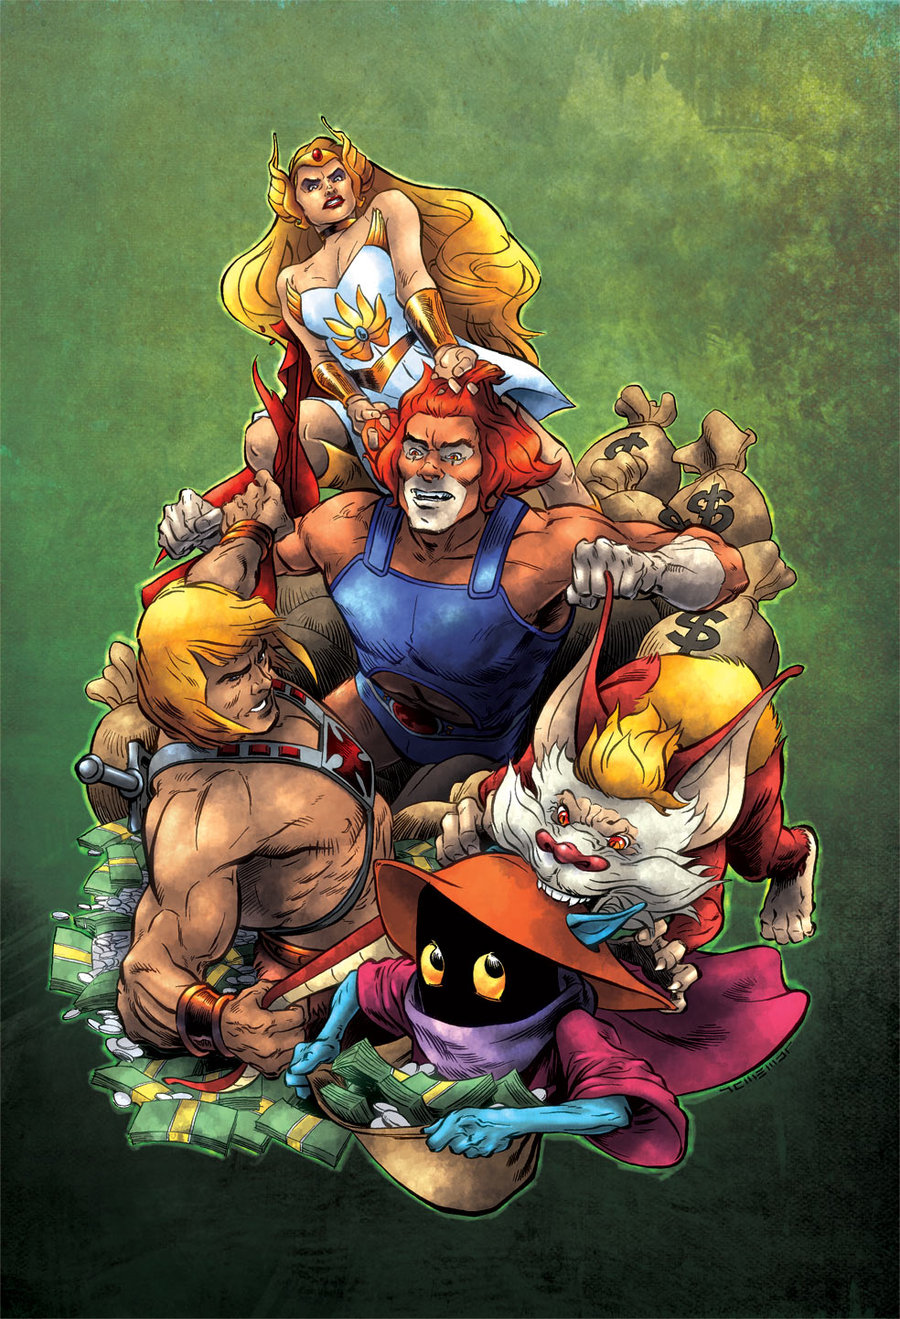 thundercats vs motu